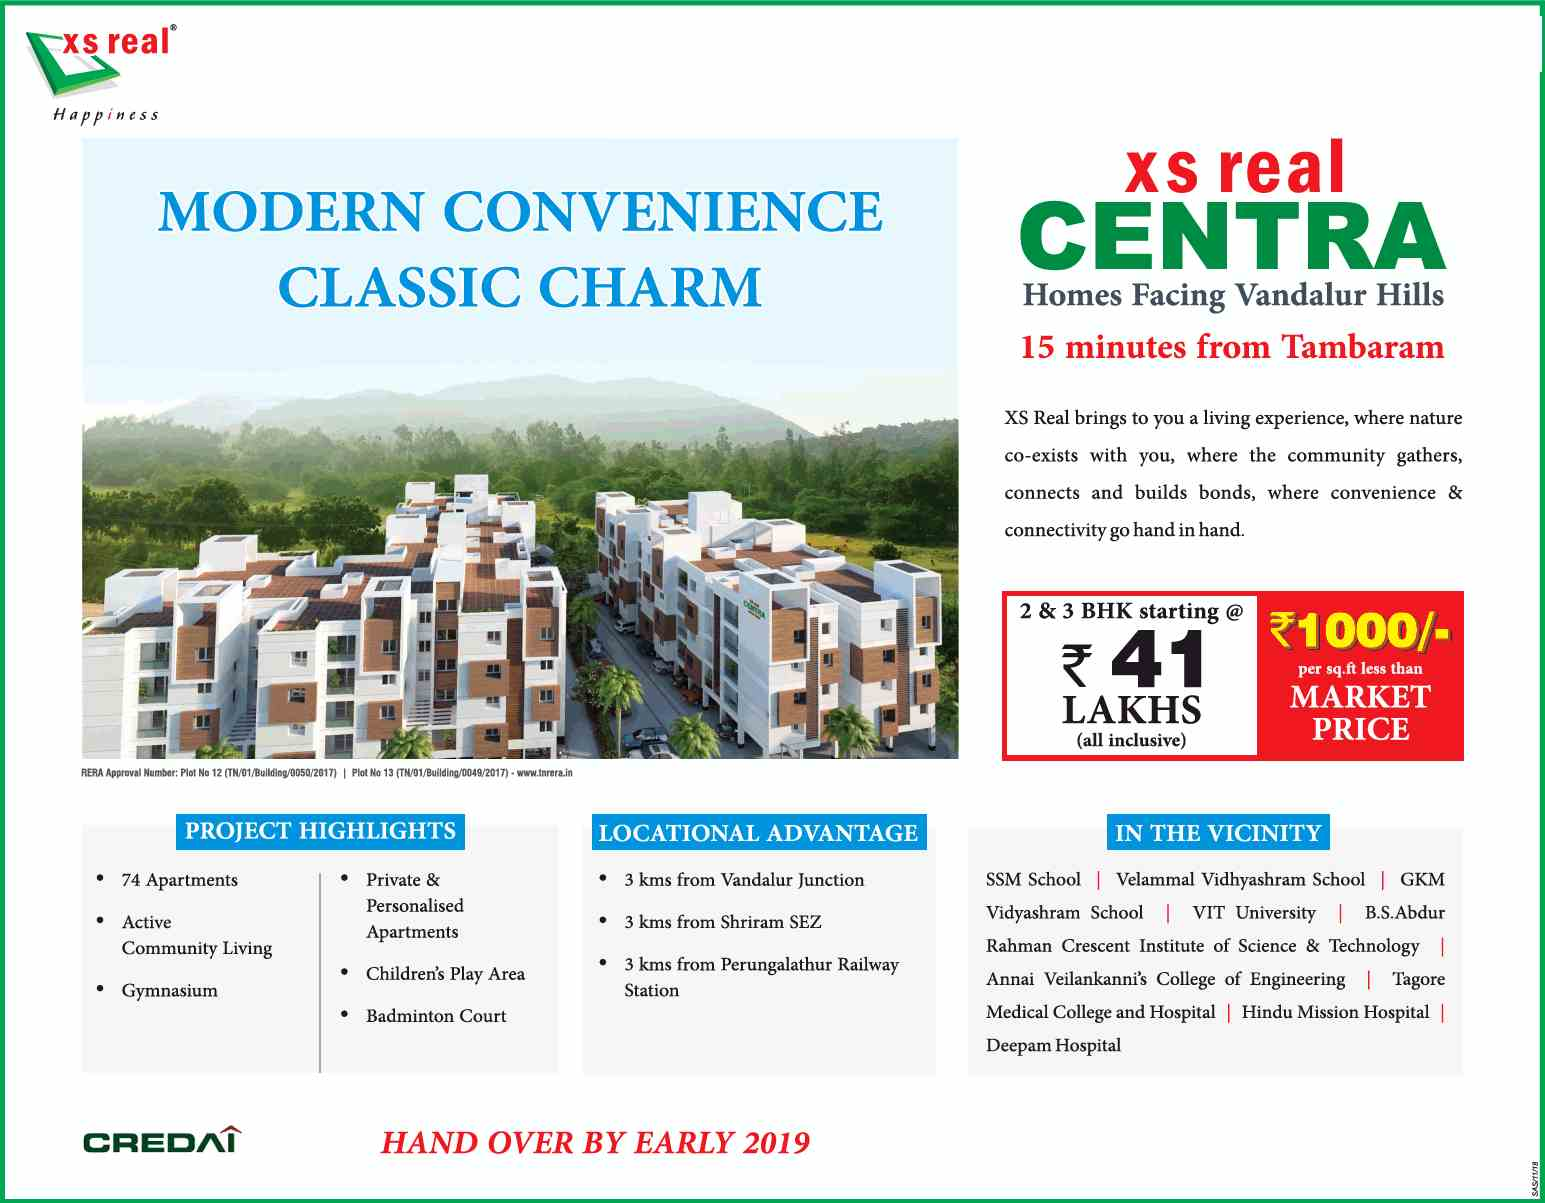 Book 2 3 BHK Rs 41 Lakhs at XS Real Centra in Chennai